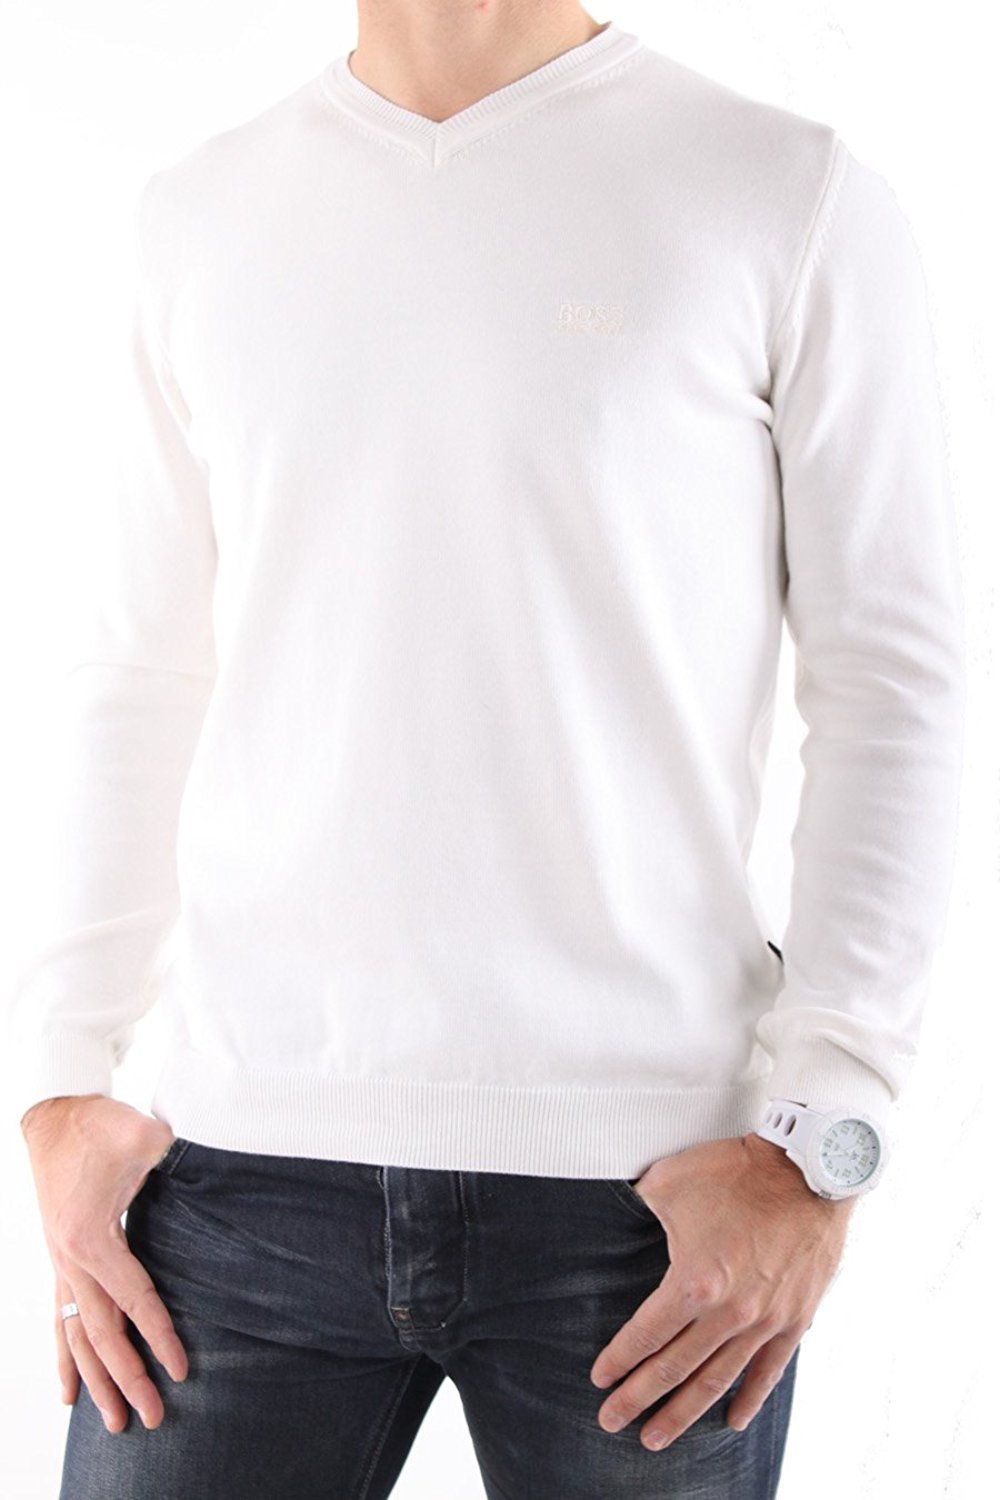 HUGO BOSS Men's V-Neck Long Sleeve Jumper Batisse-B - White, M